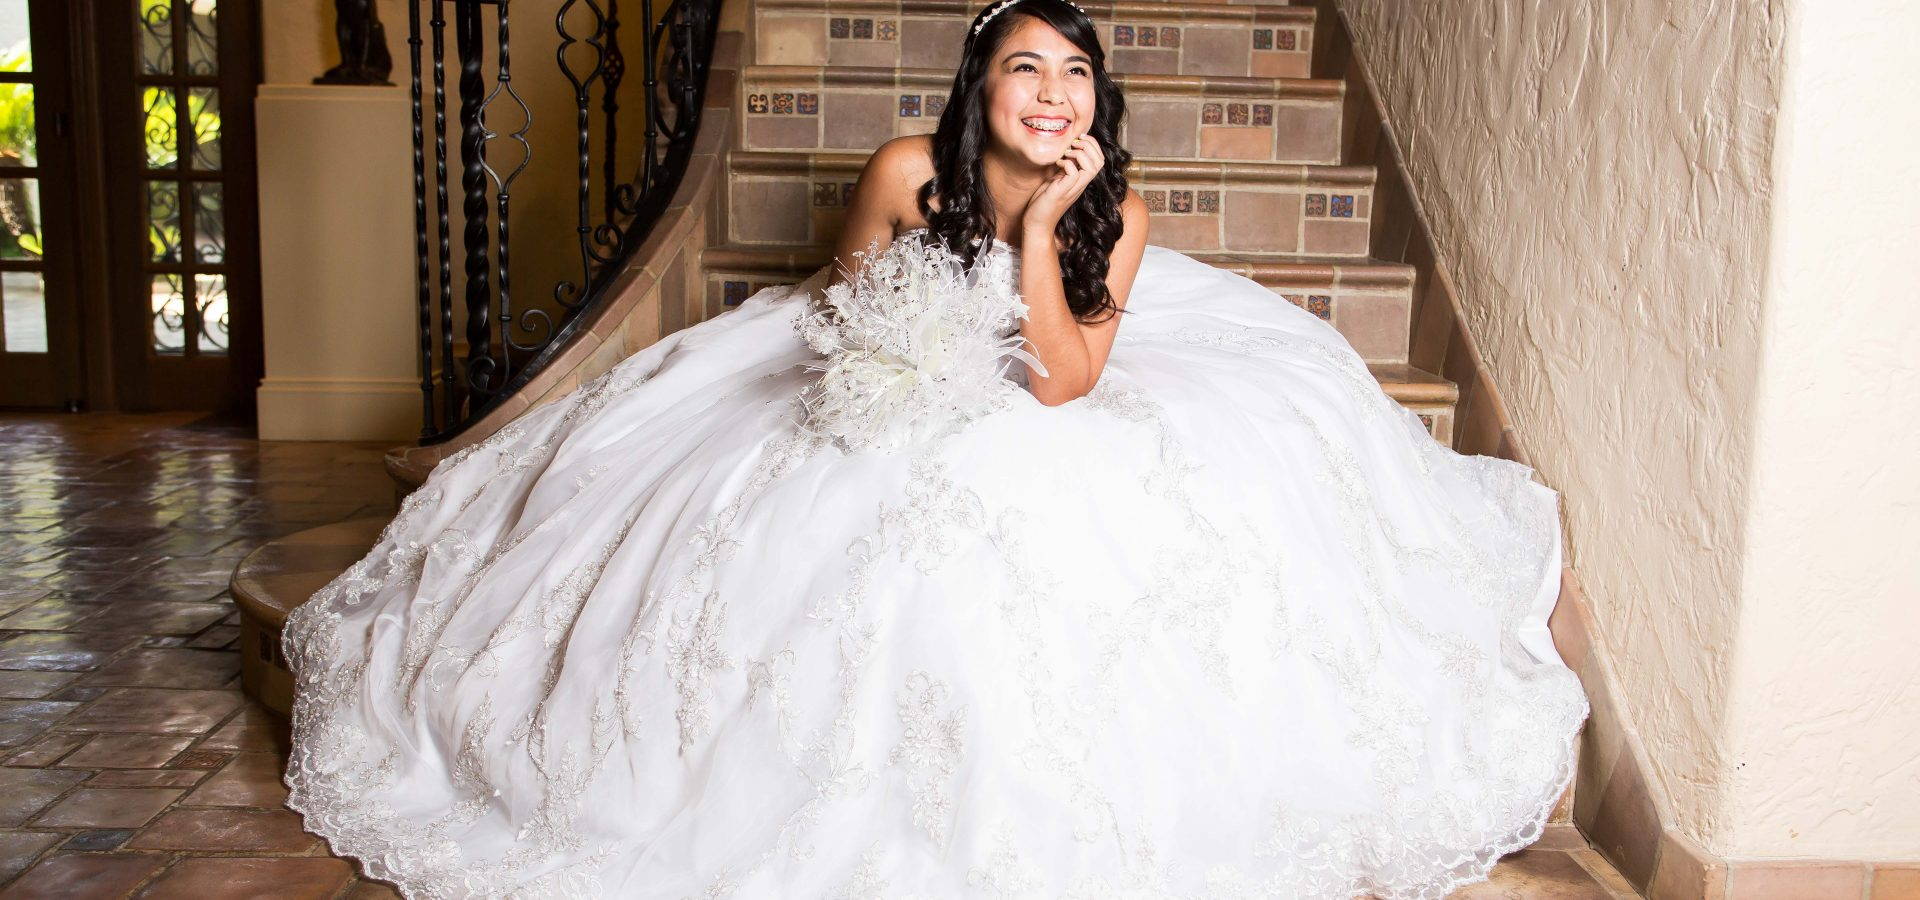 San Antonio Teen Senior Portrait Quinceanera Mitzvah Event Planning and Photography